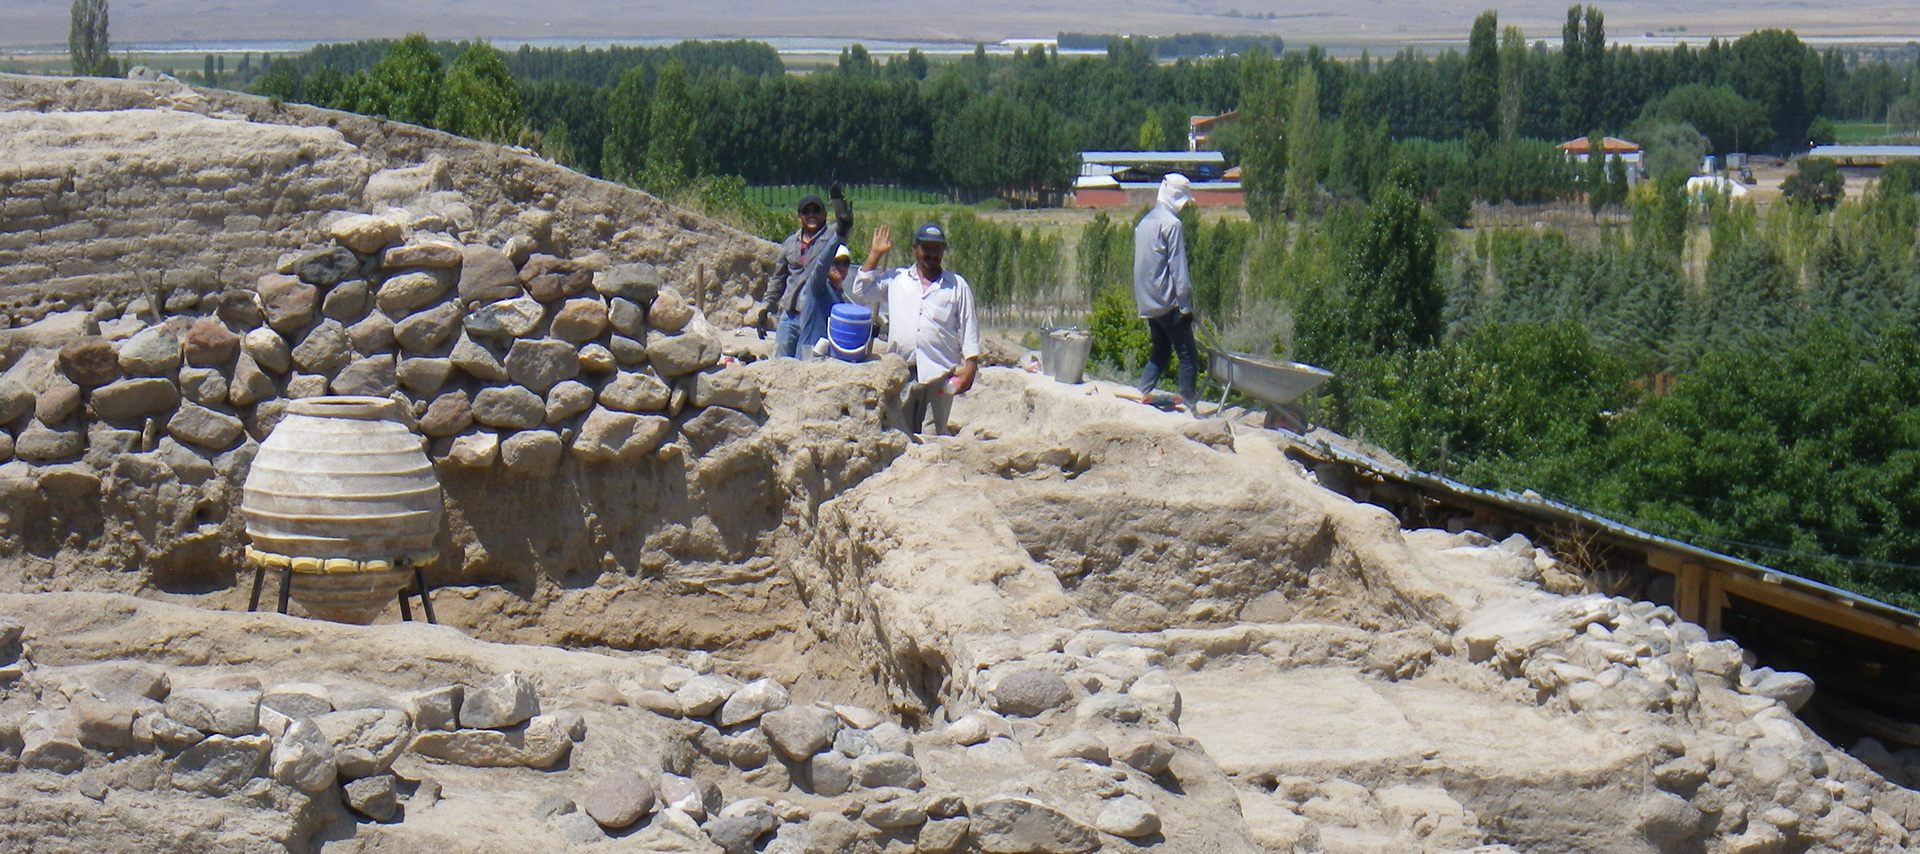 Image of an active dig site, with some of the workers waving